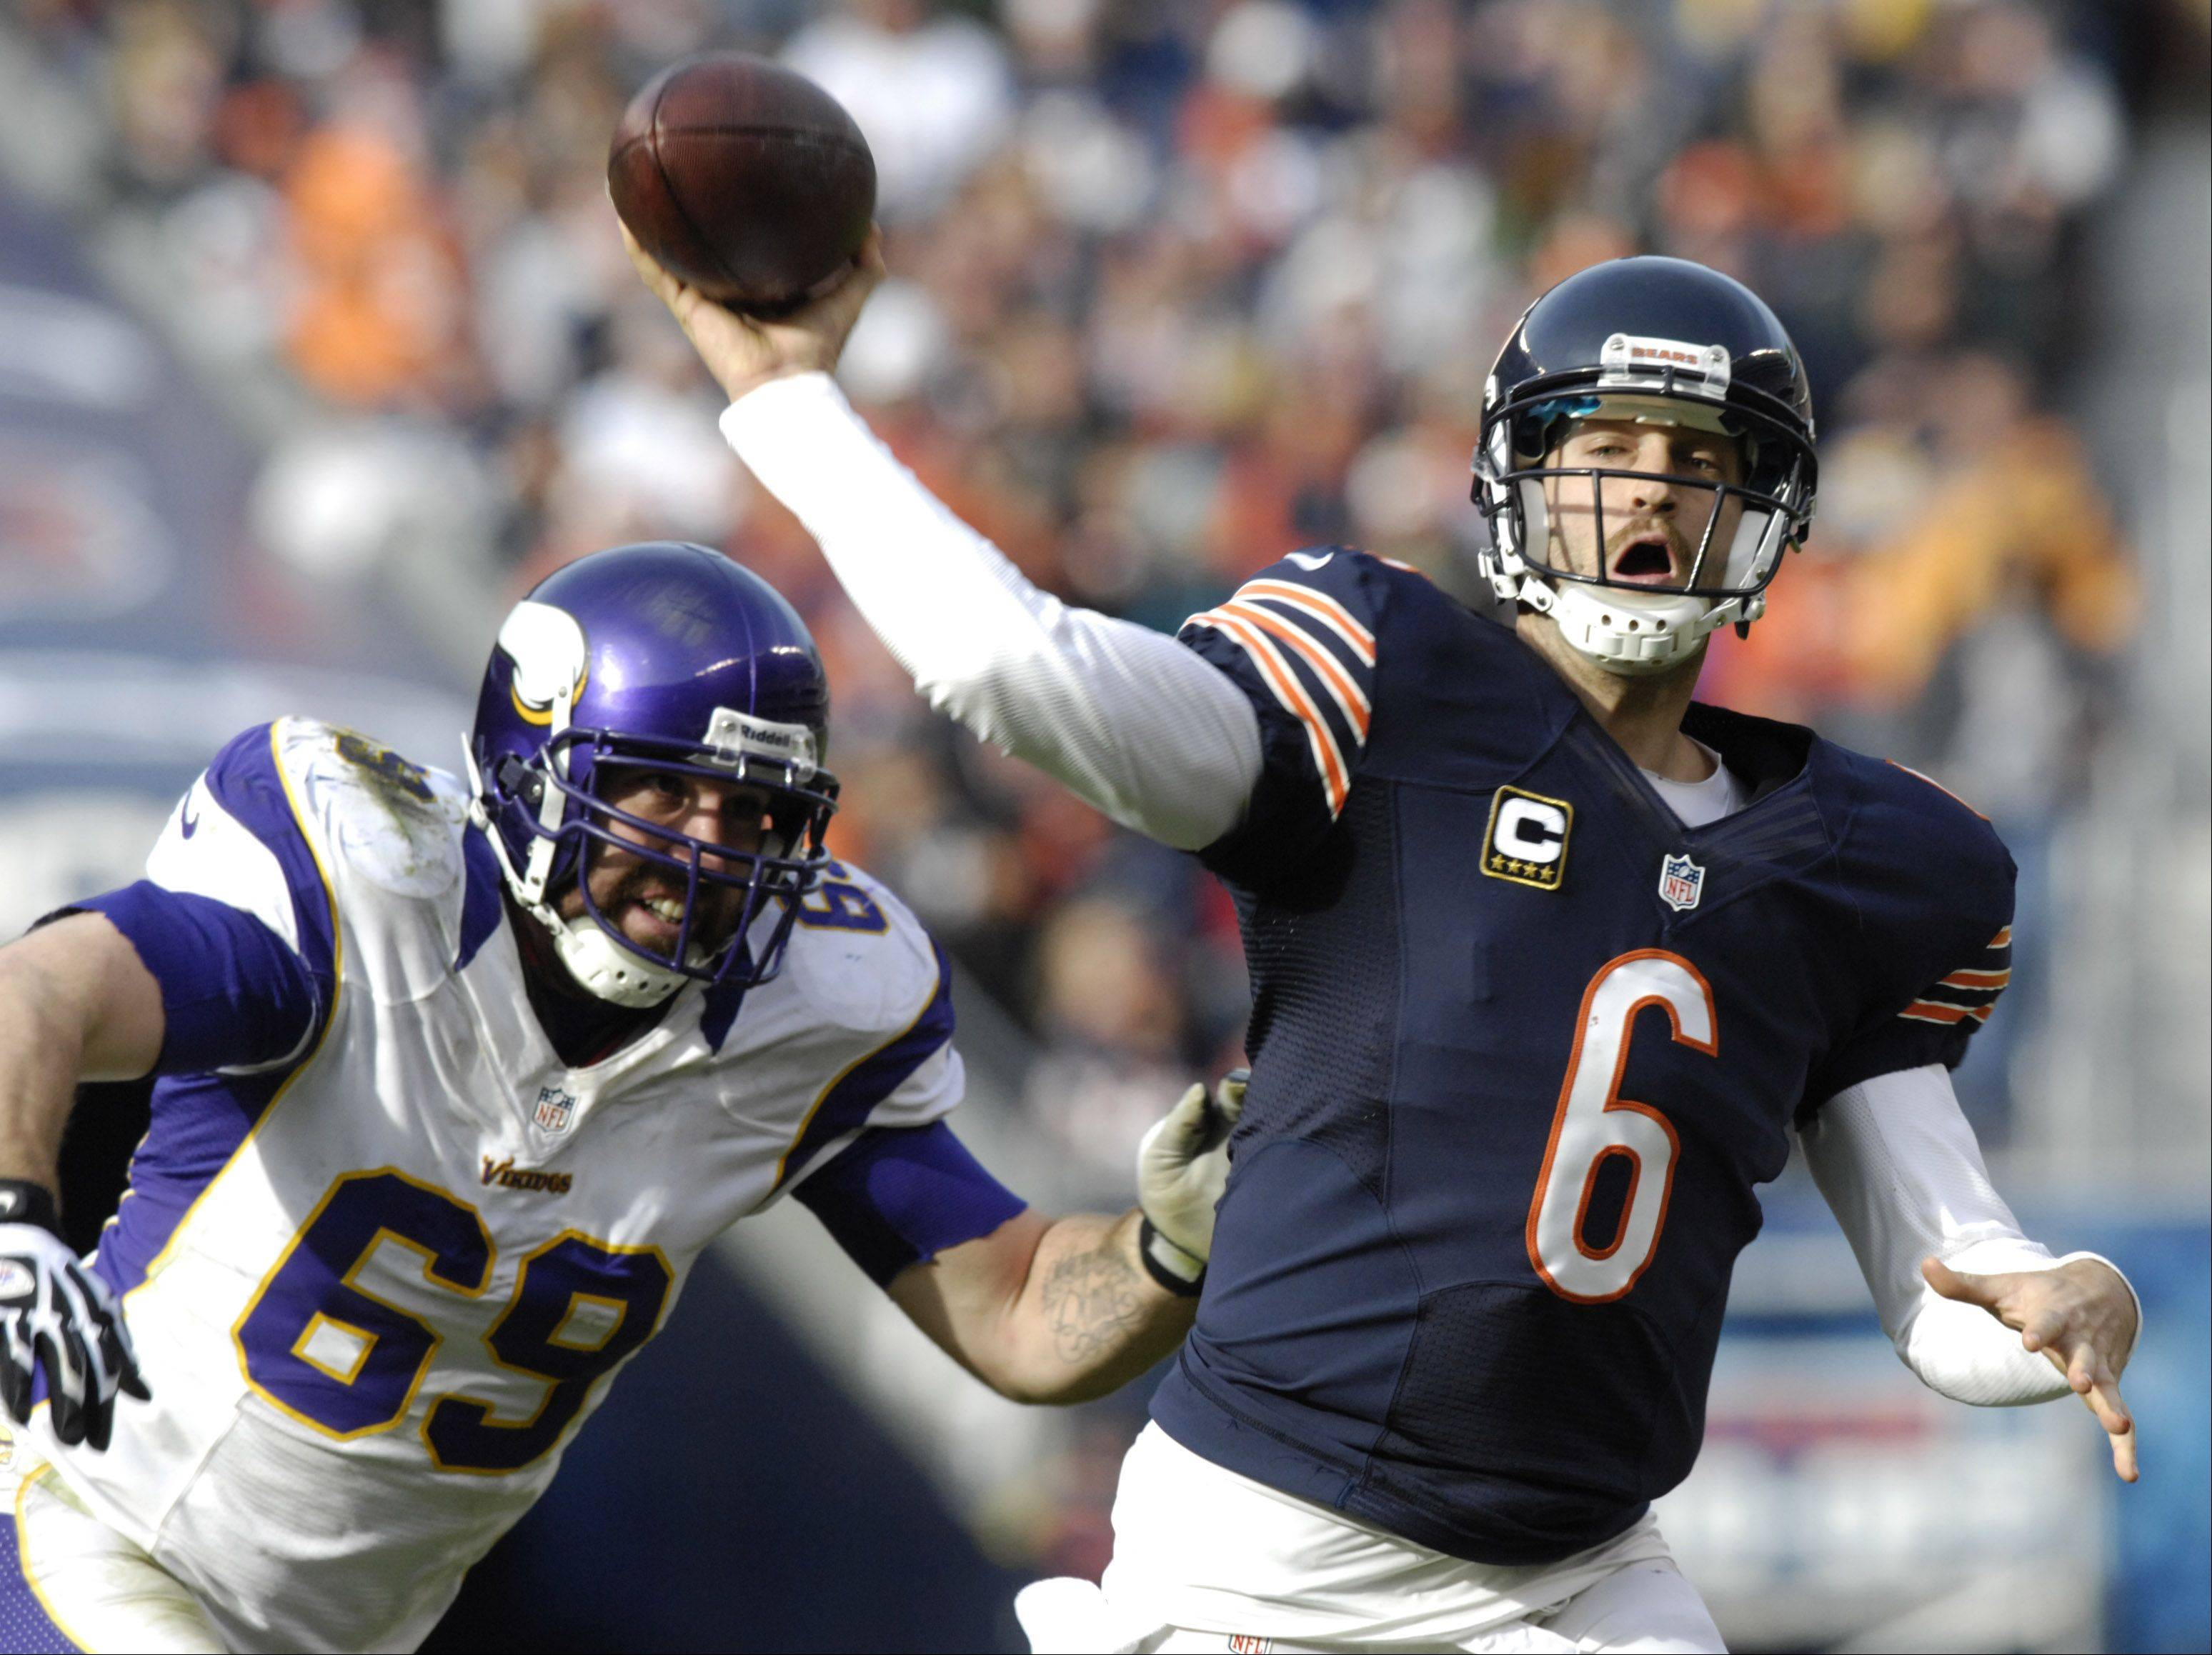 Bears quarterback Jay Cutler throws a second-quarter touchdown pass to tight end Matt Spaeth while being pursued by Minnesota Vikings defensive tackle Jared Allen at Soldier Field Sunday.